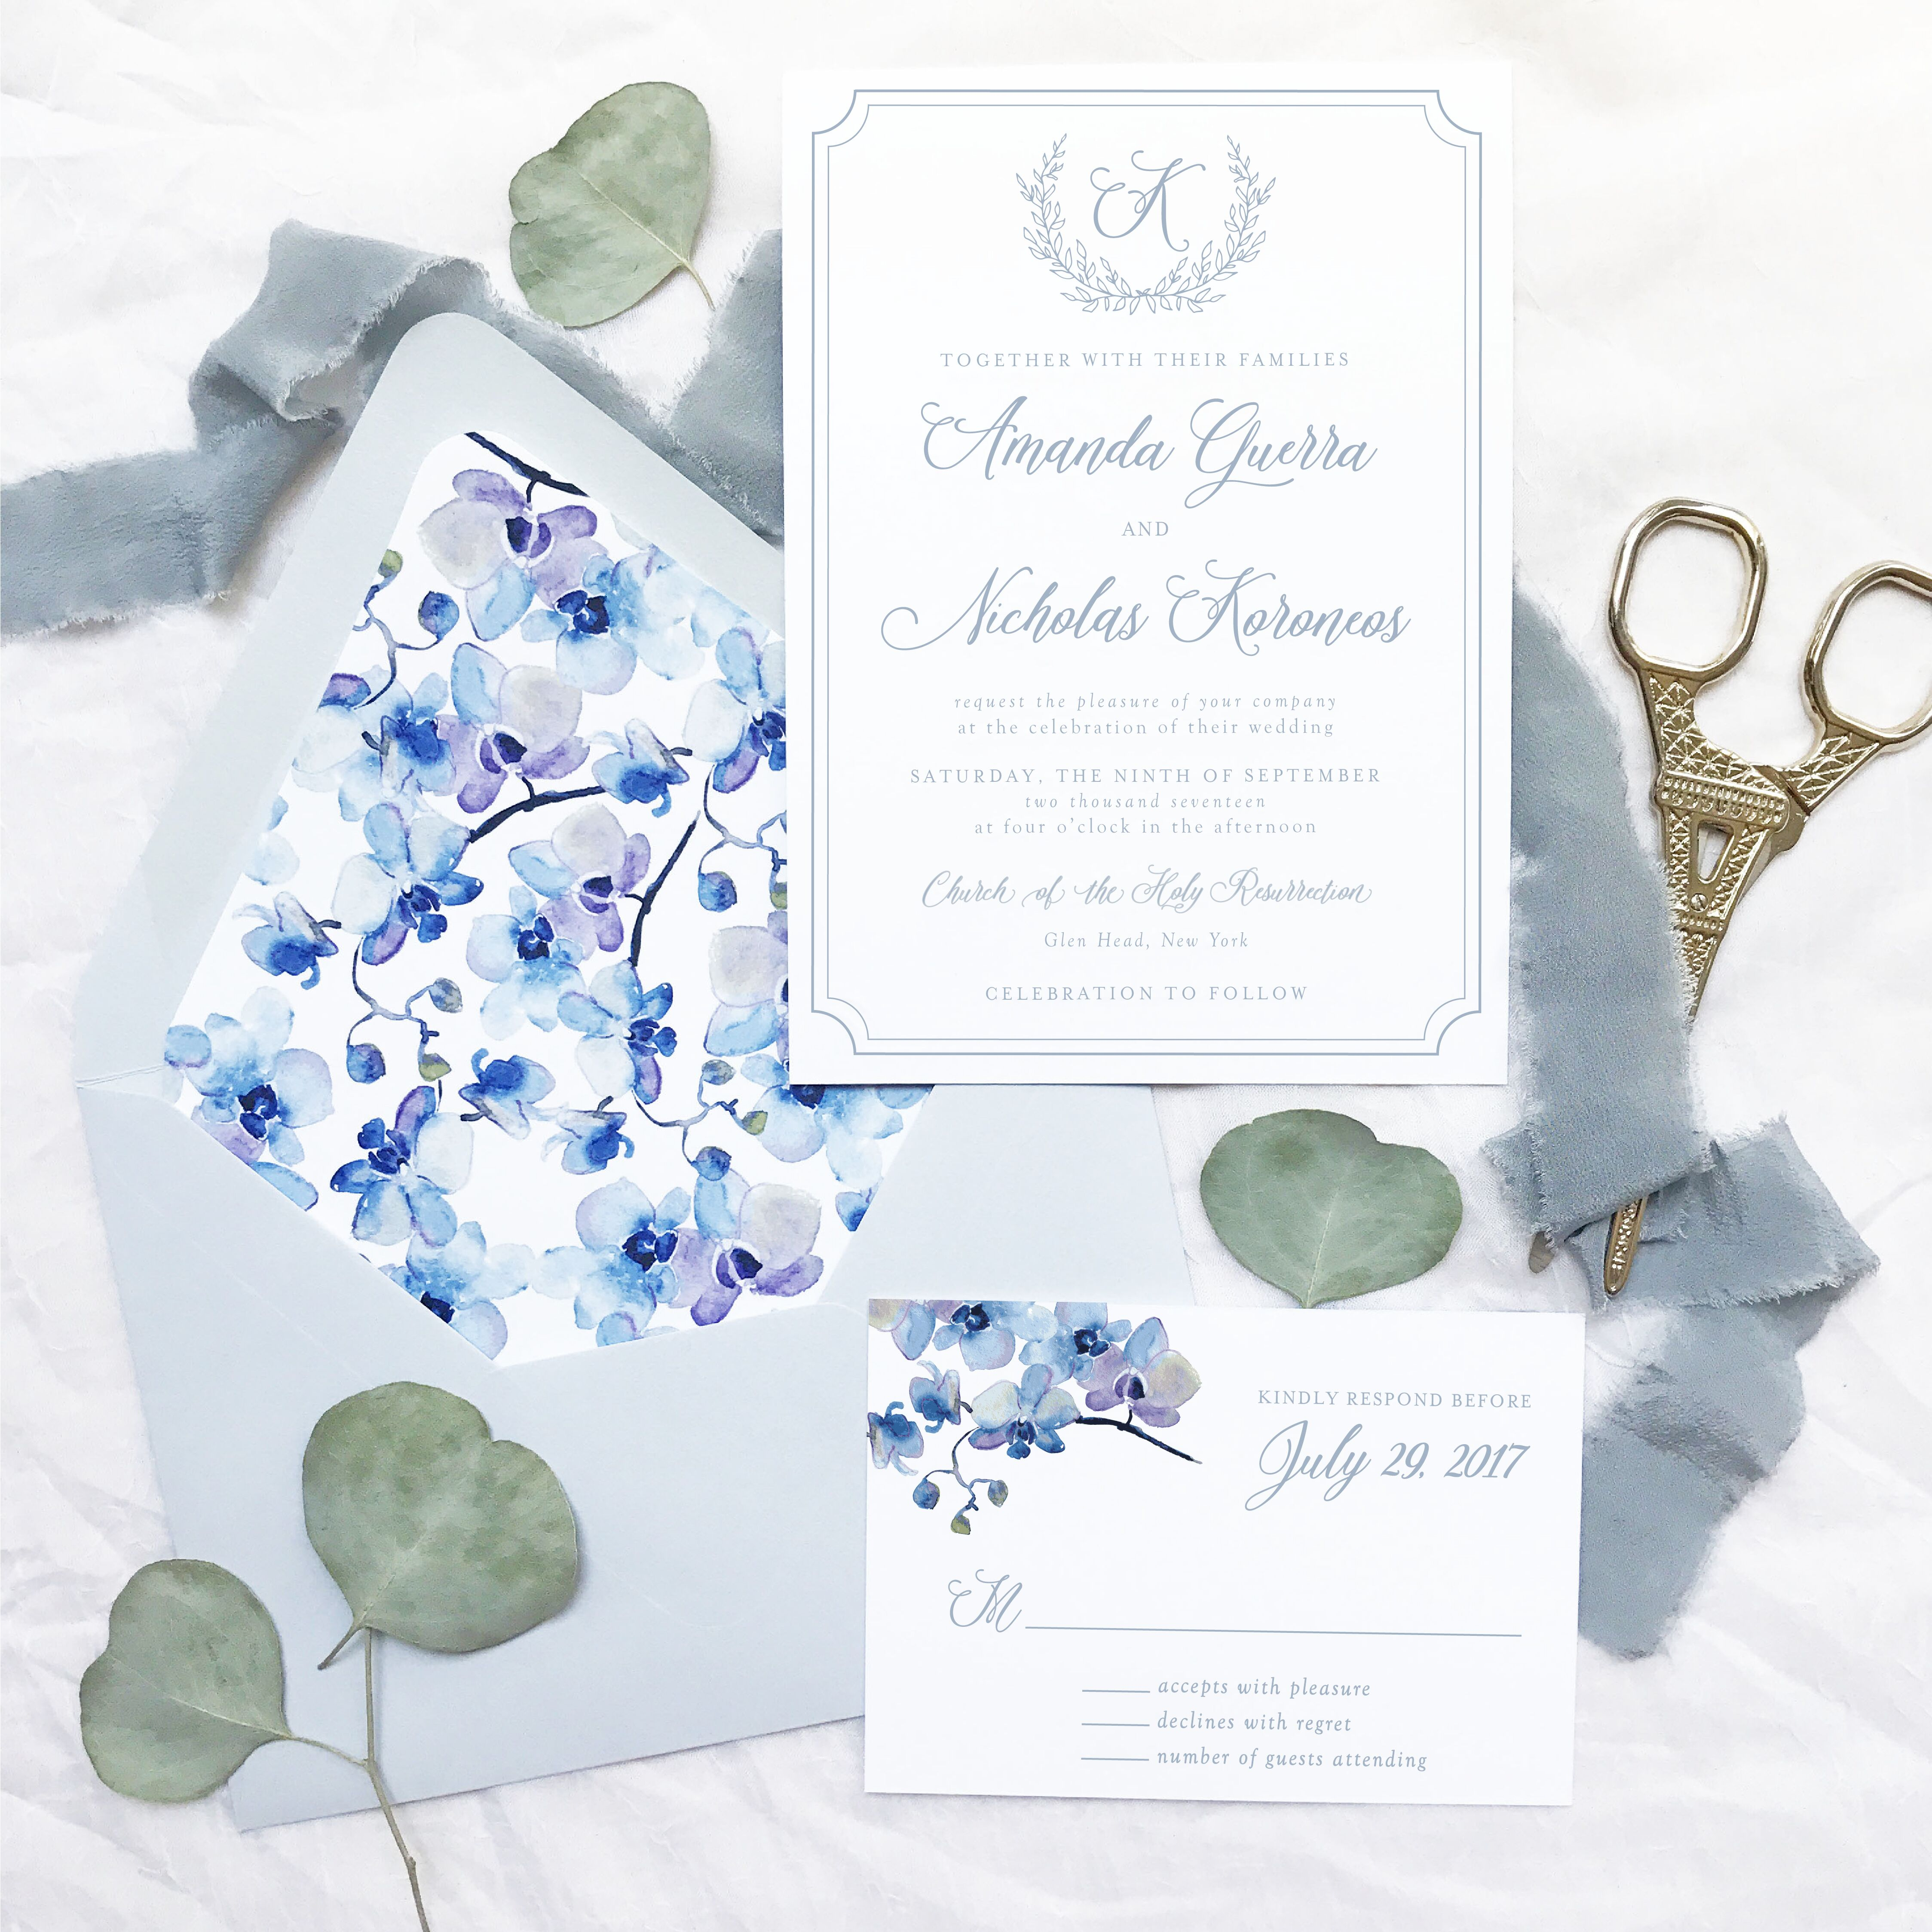 Whimsy B Paperie - Serving Long Island/NYC, NY